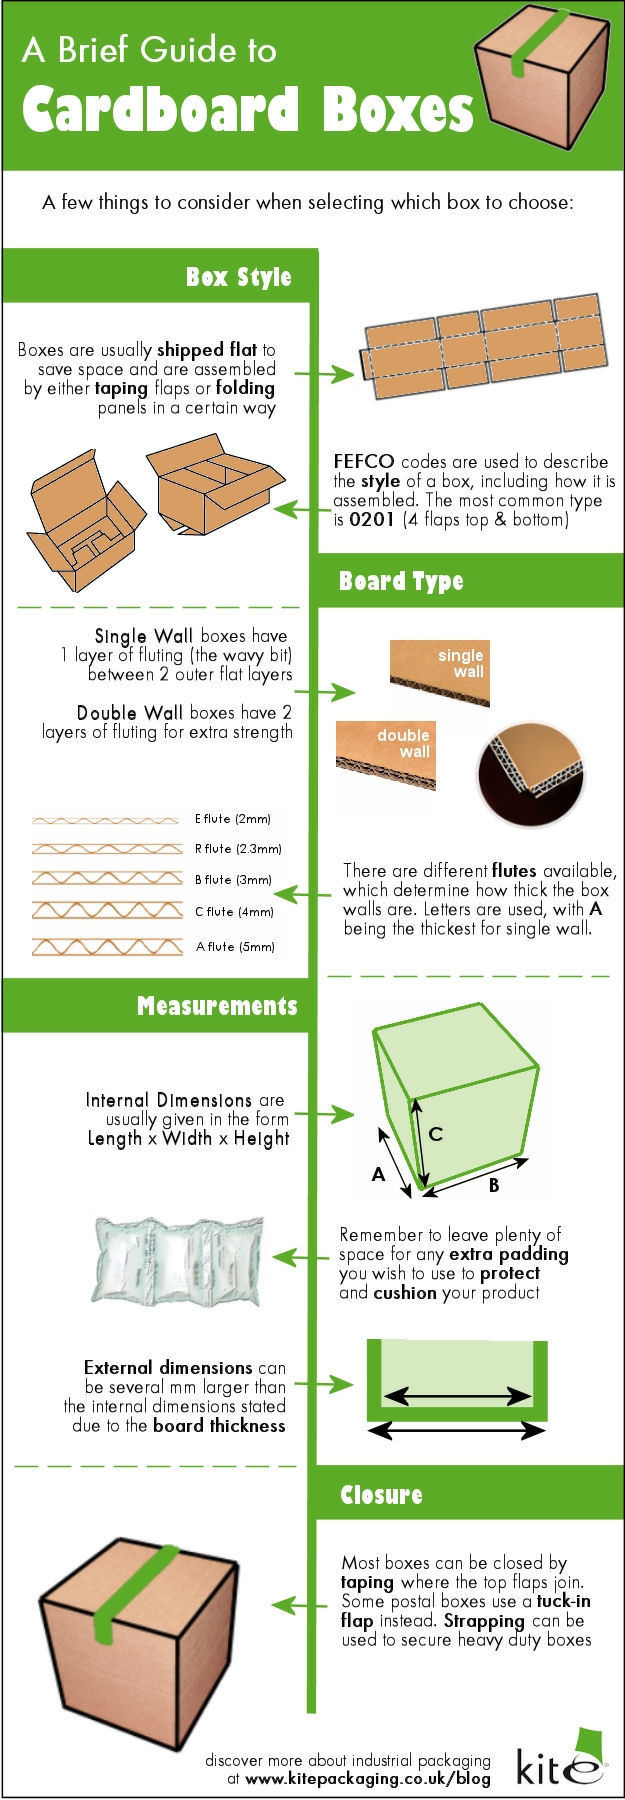 A Brief Guide to Cardboard Boxes